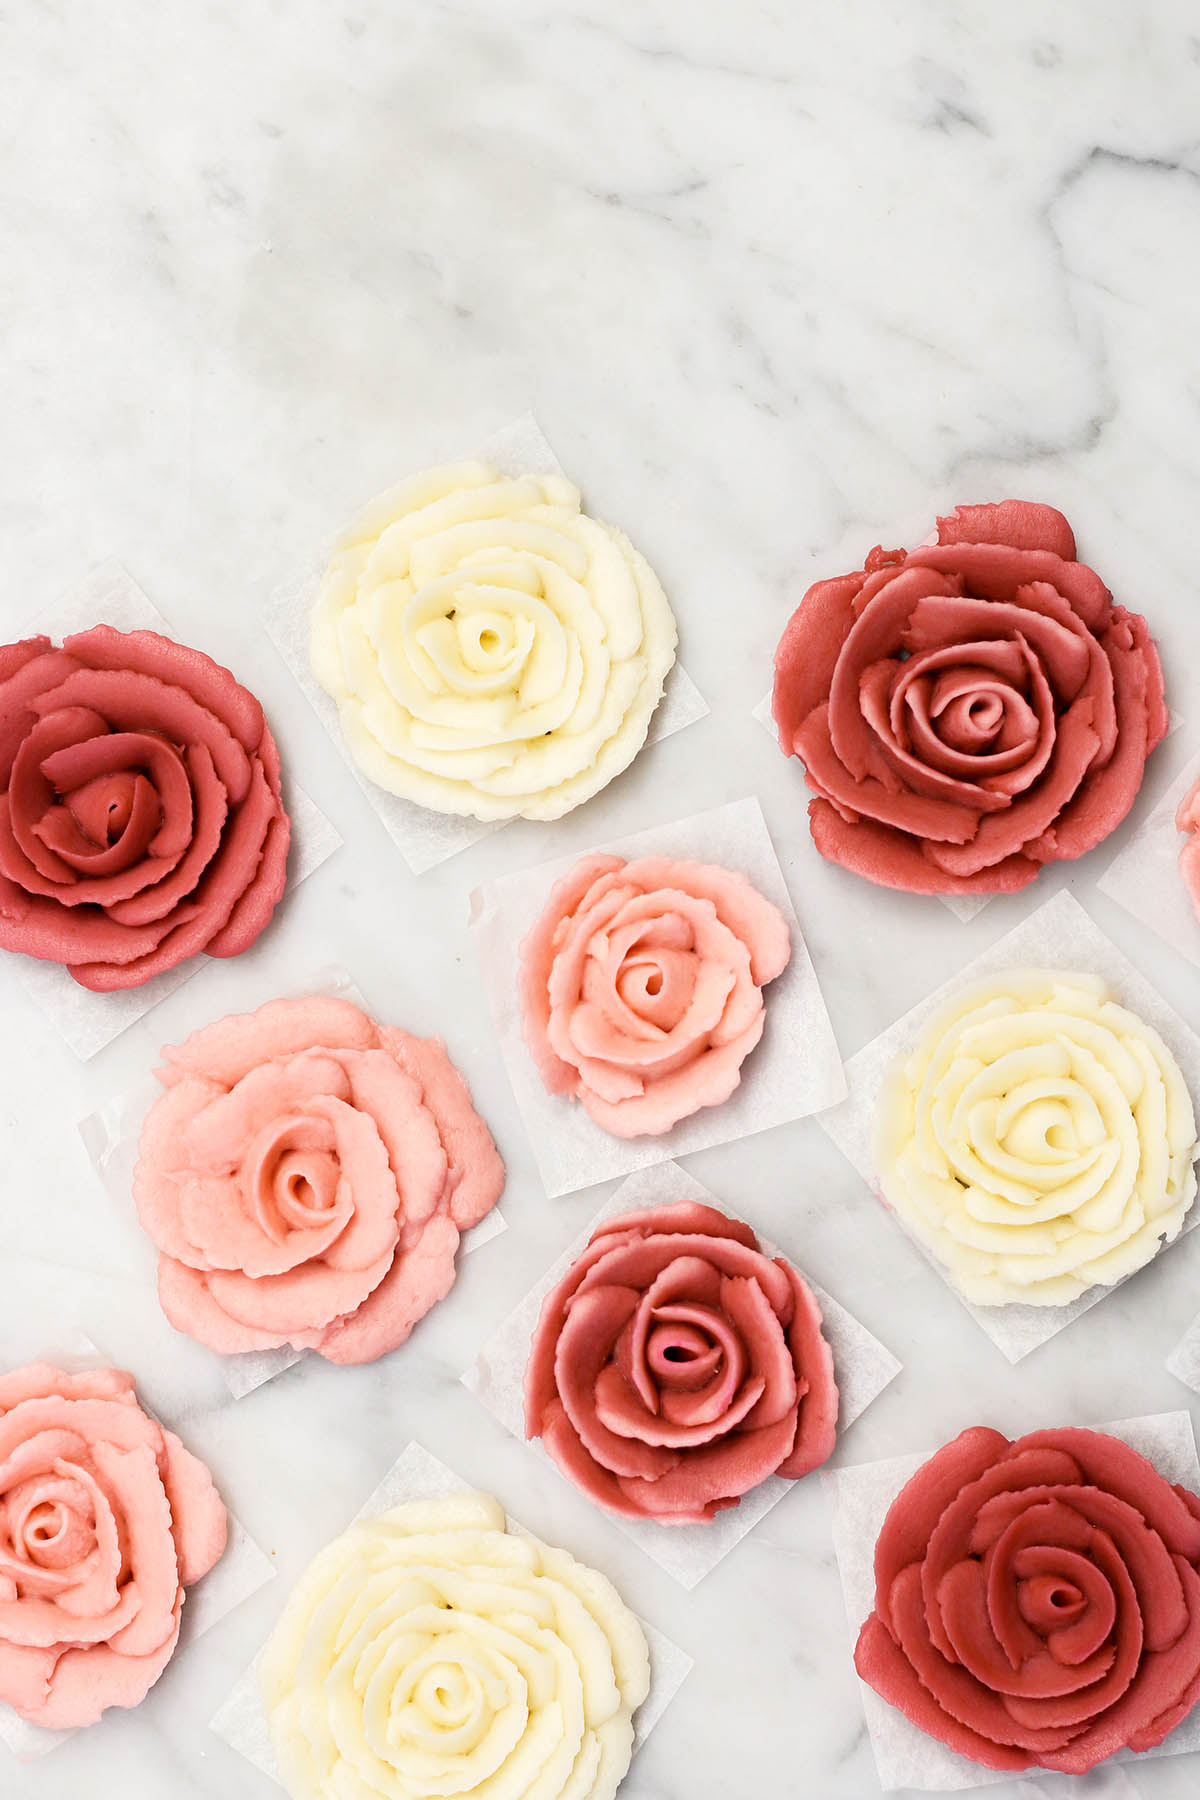 Buttercream roses on a marble background.